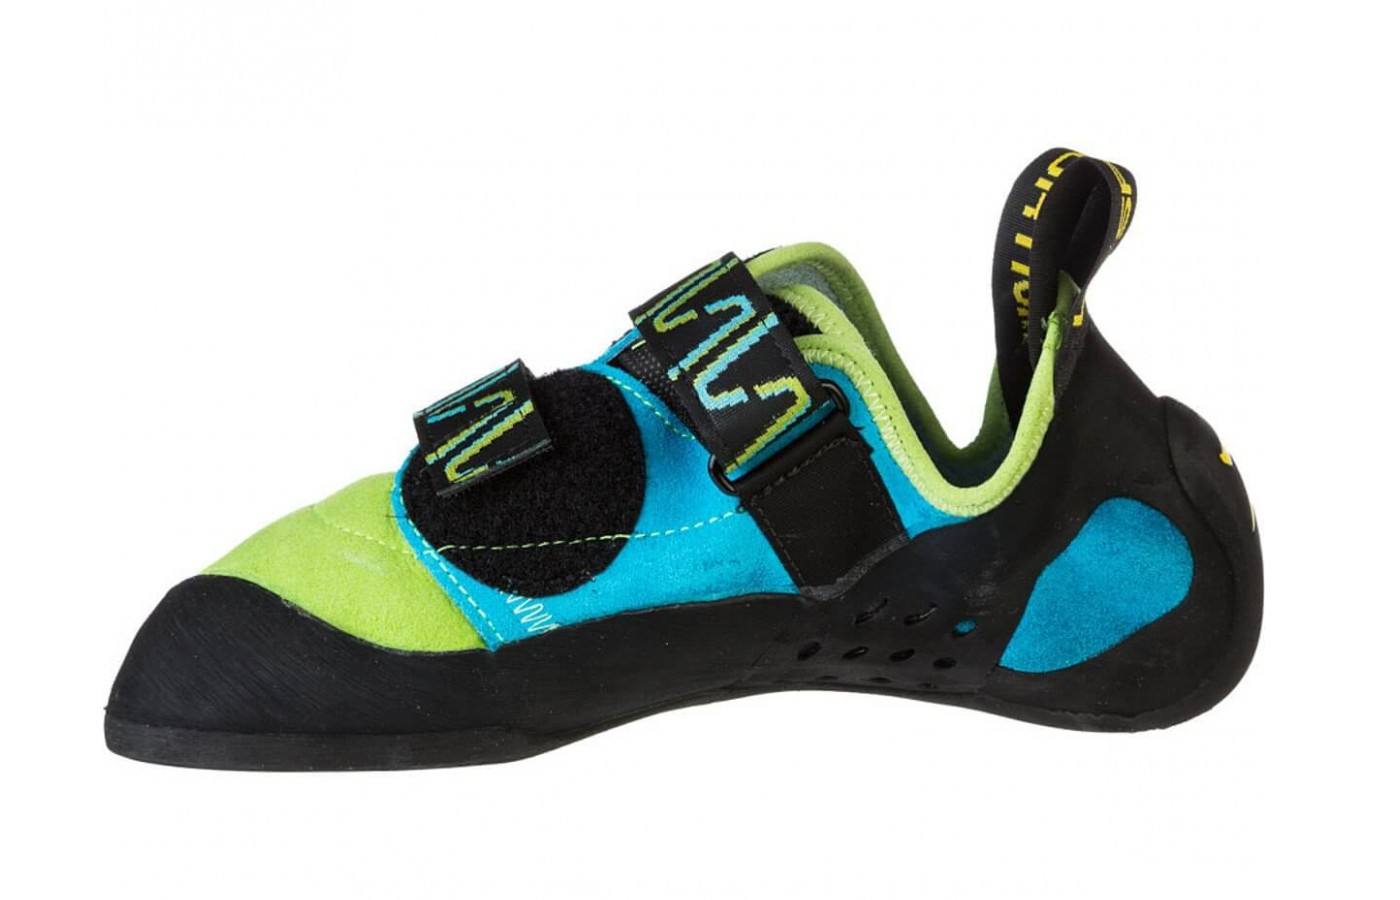 The slight downturn of the La Sportiva is less aggressive than the Miura.